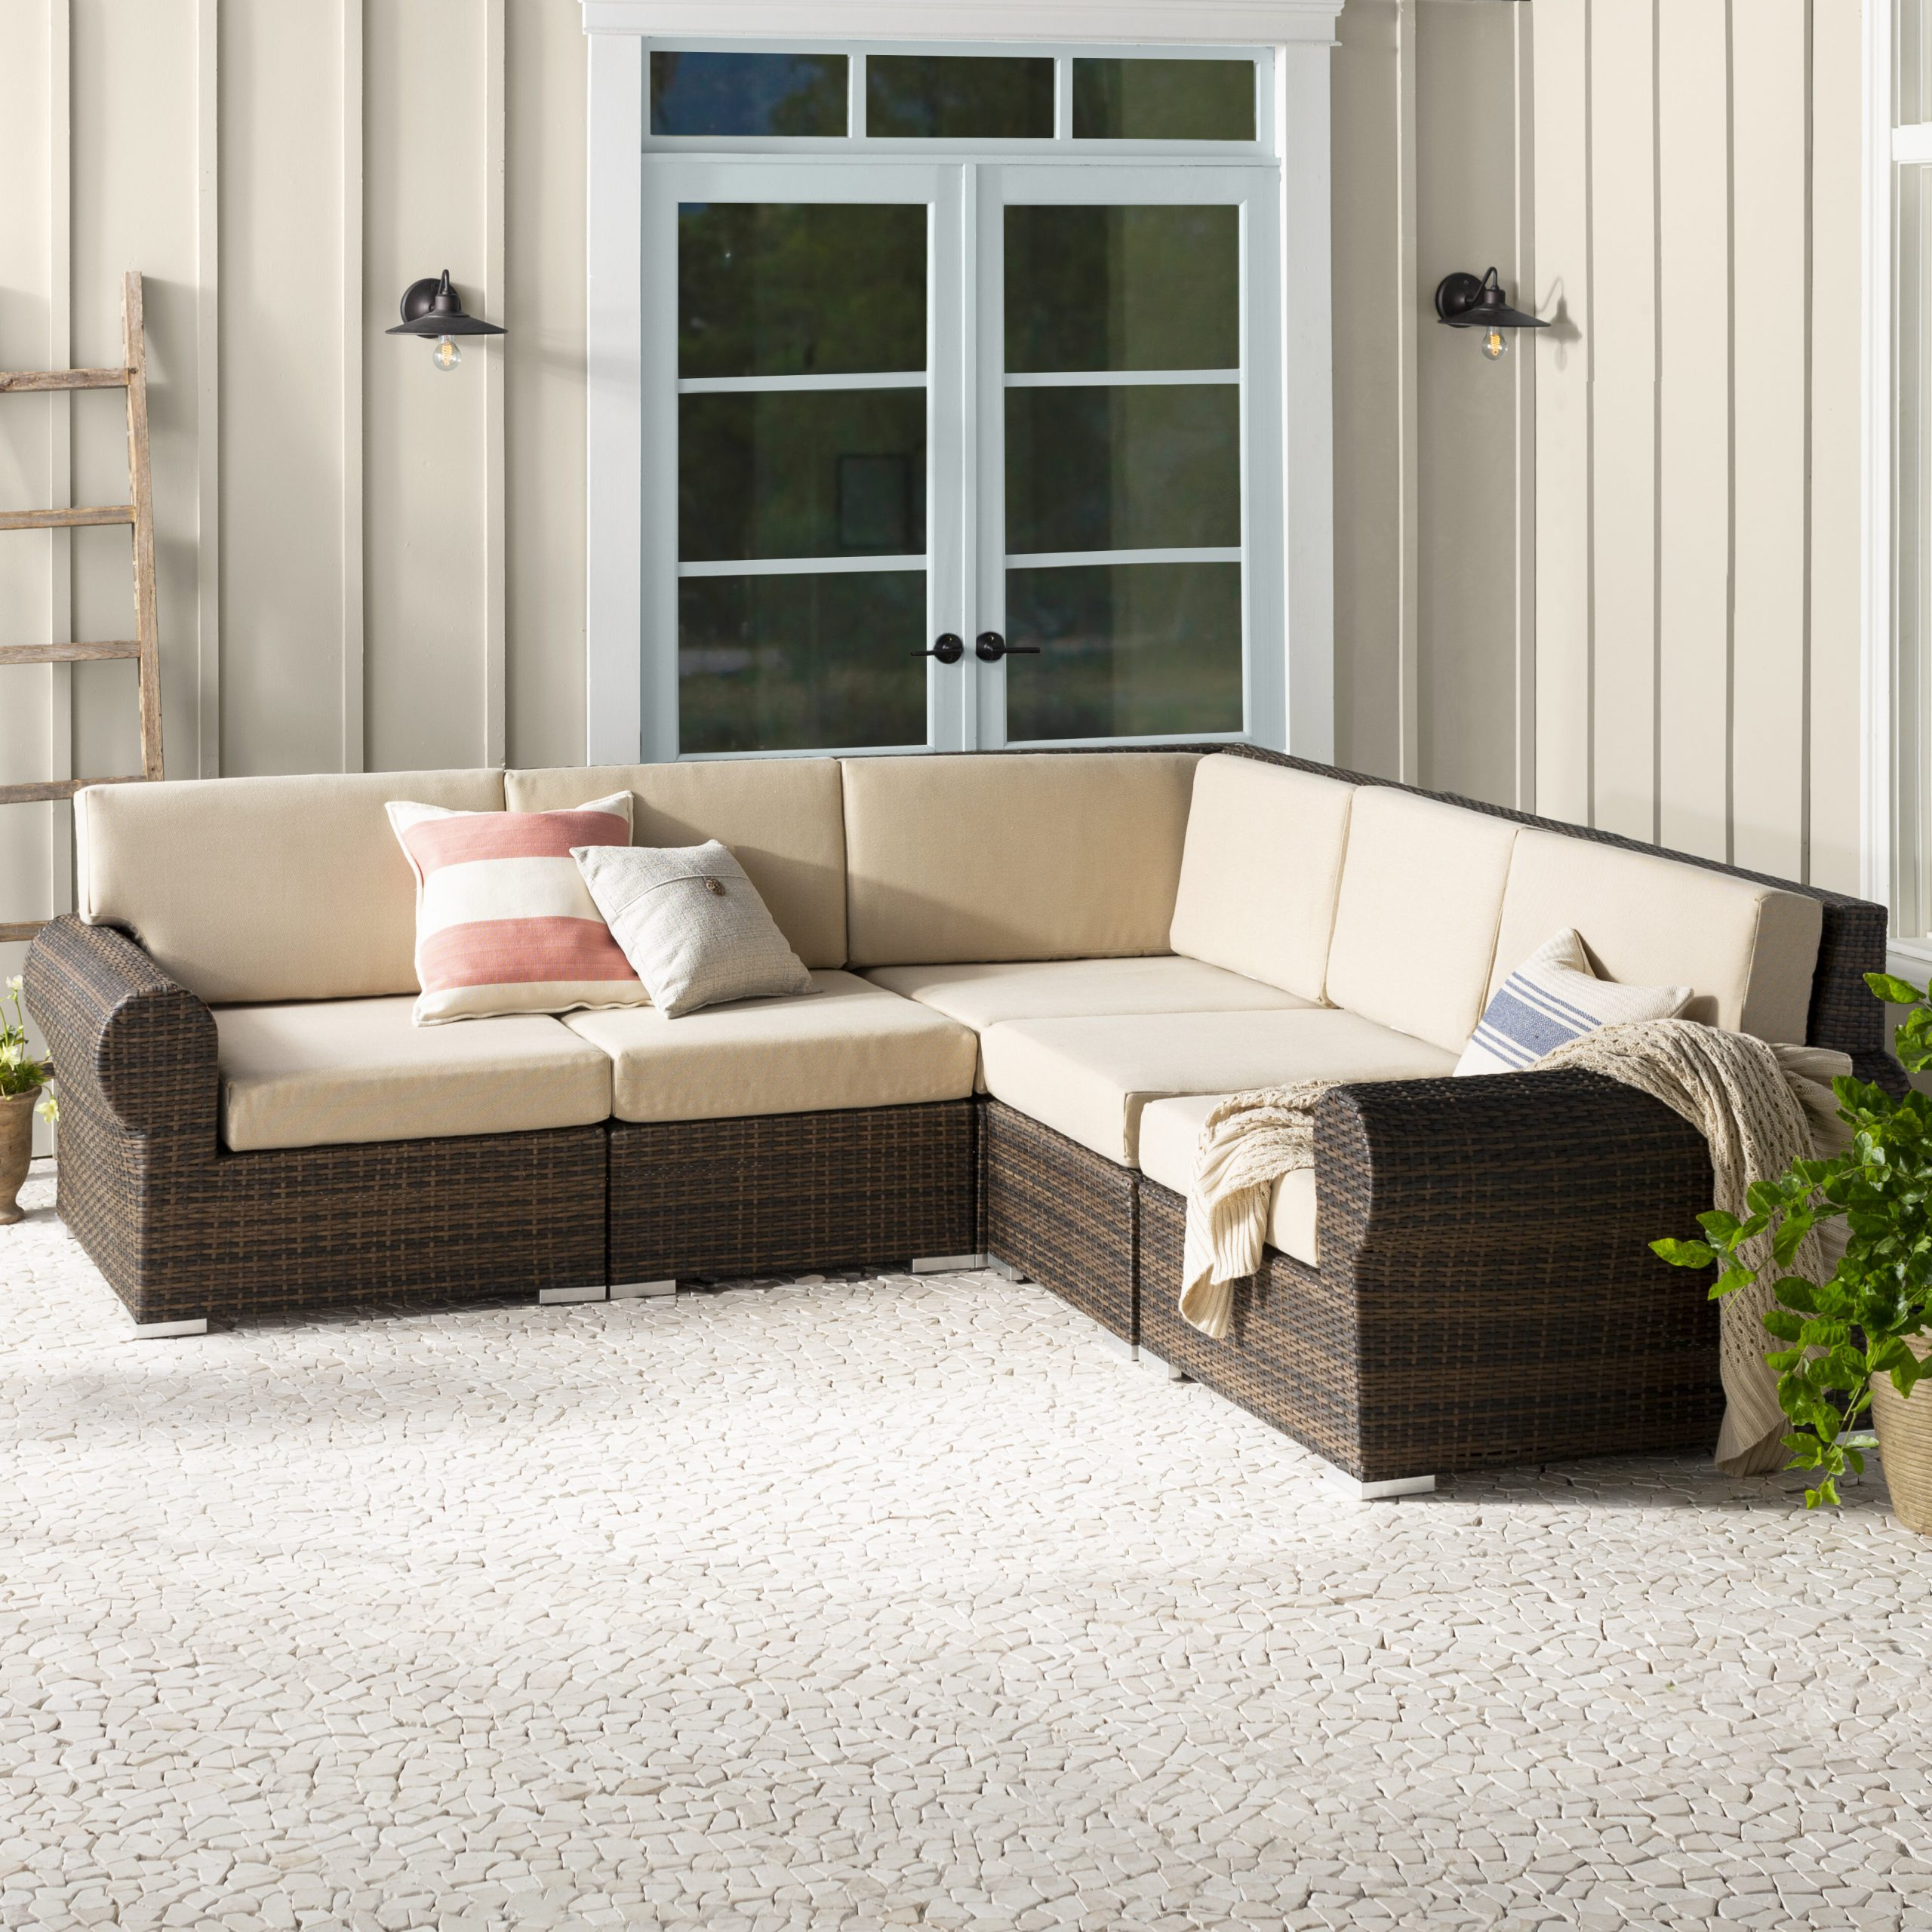 Lawson Patio Sofas With Cushions Inside Current Brookhaven Patio Sectional With Cushions (View 10 of 25)